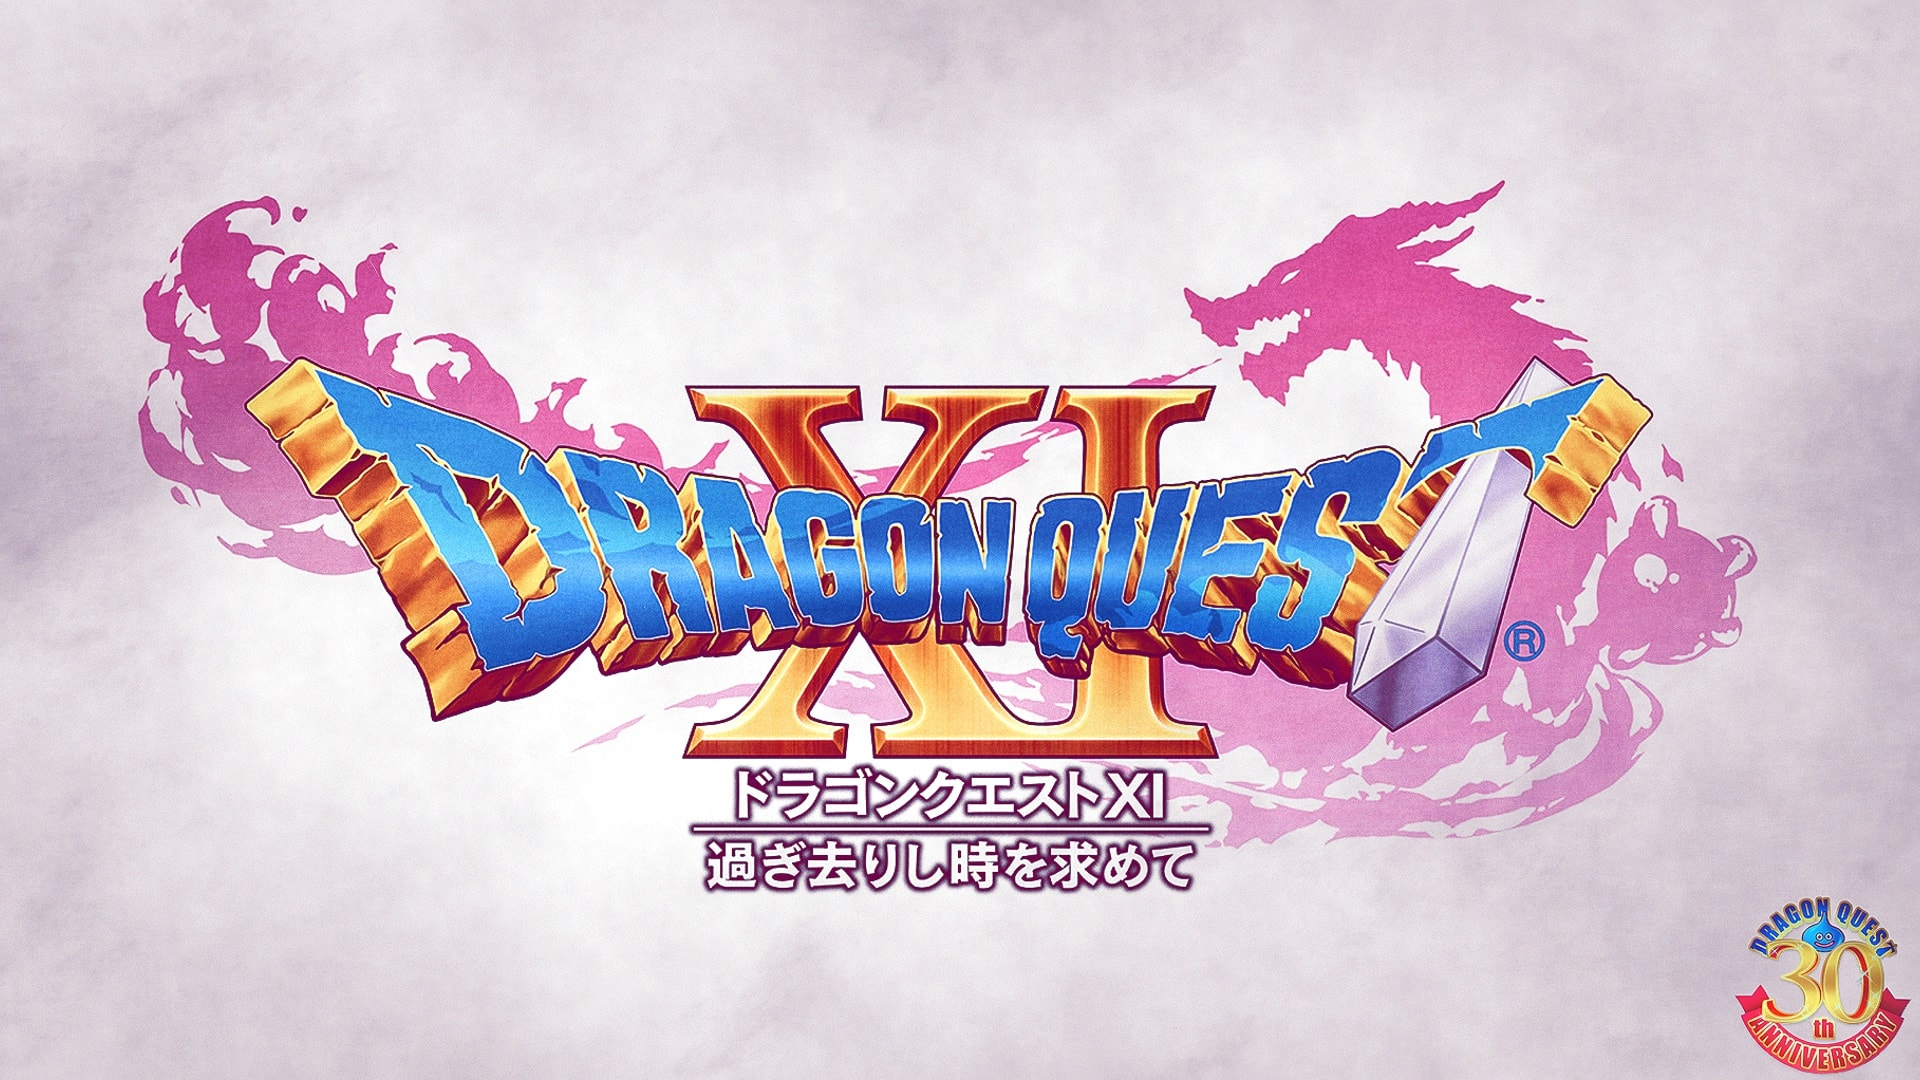 Nintendo confirma oficialmente Dragon Quest XI para Nintedo Switch